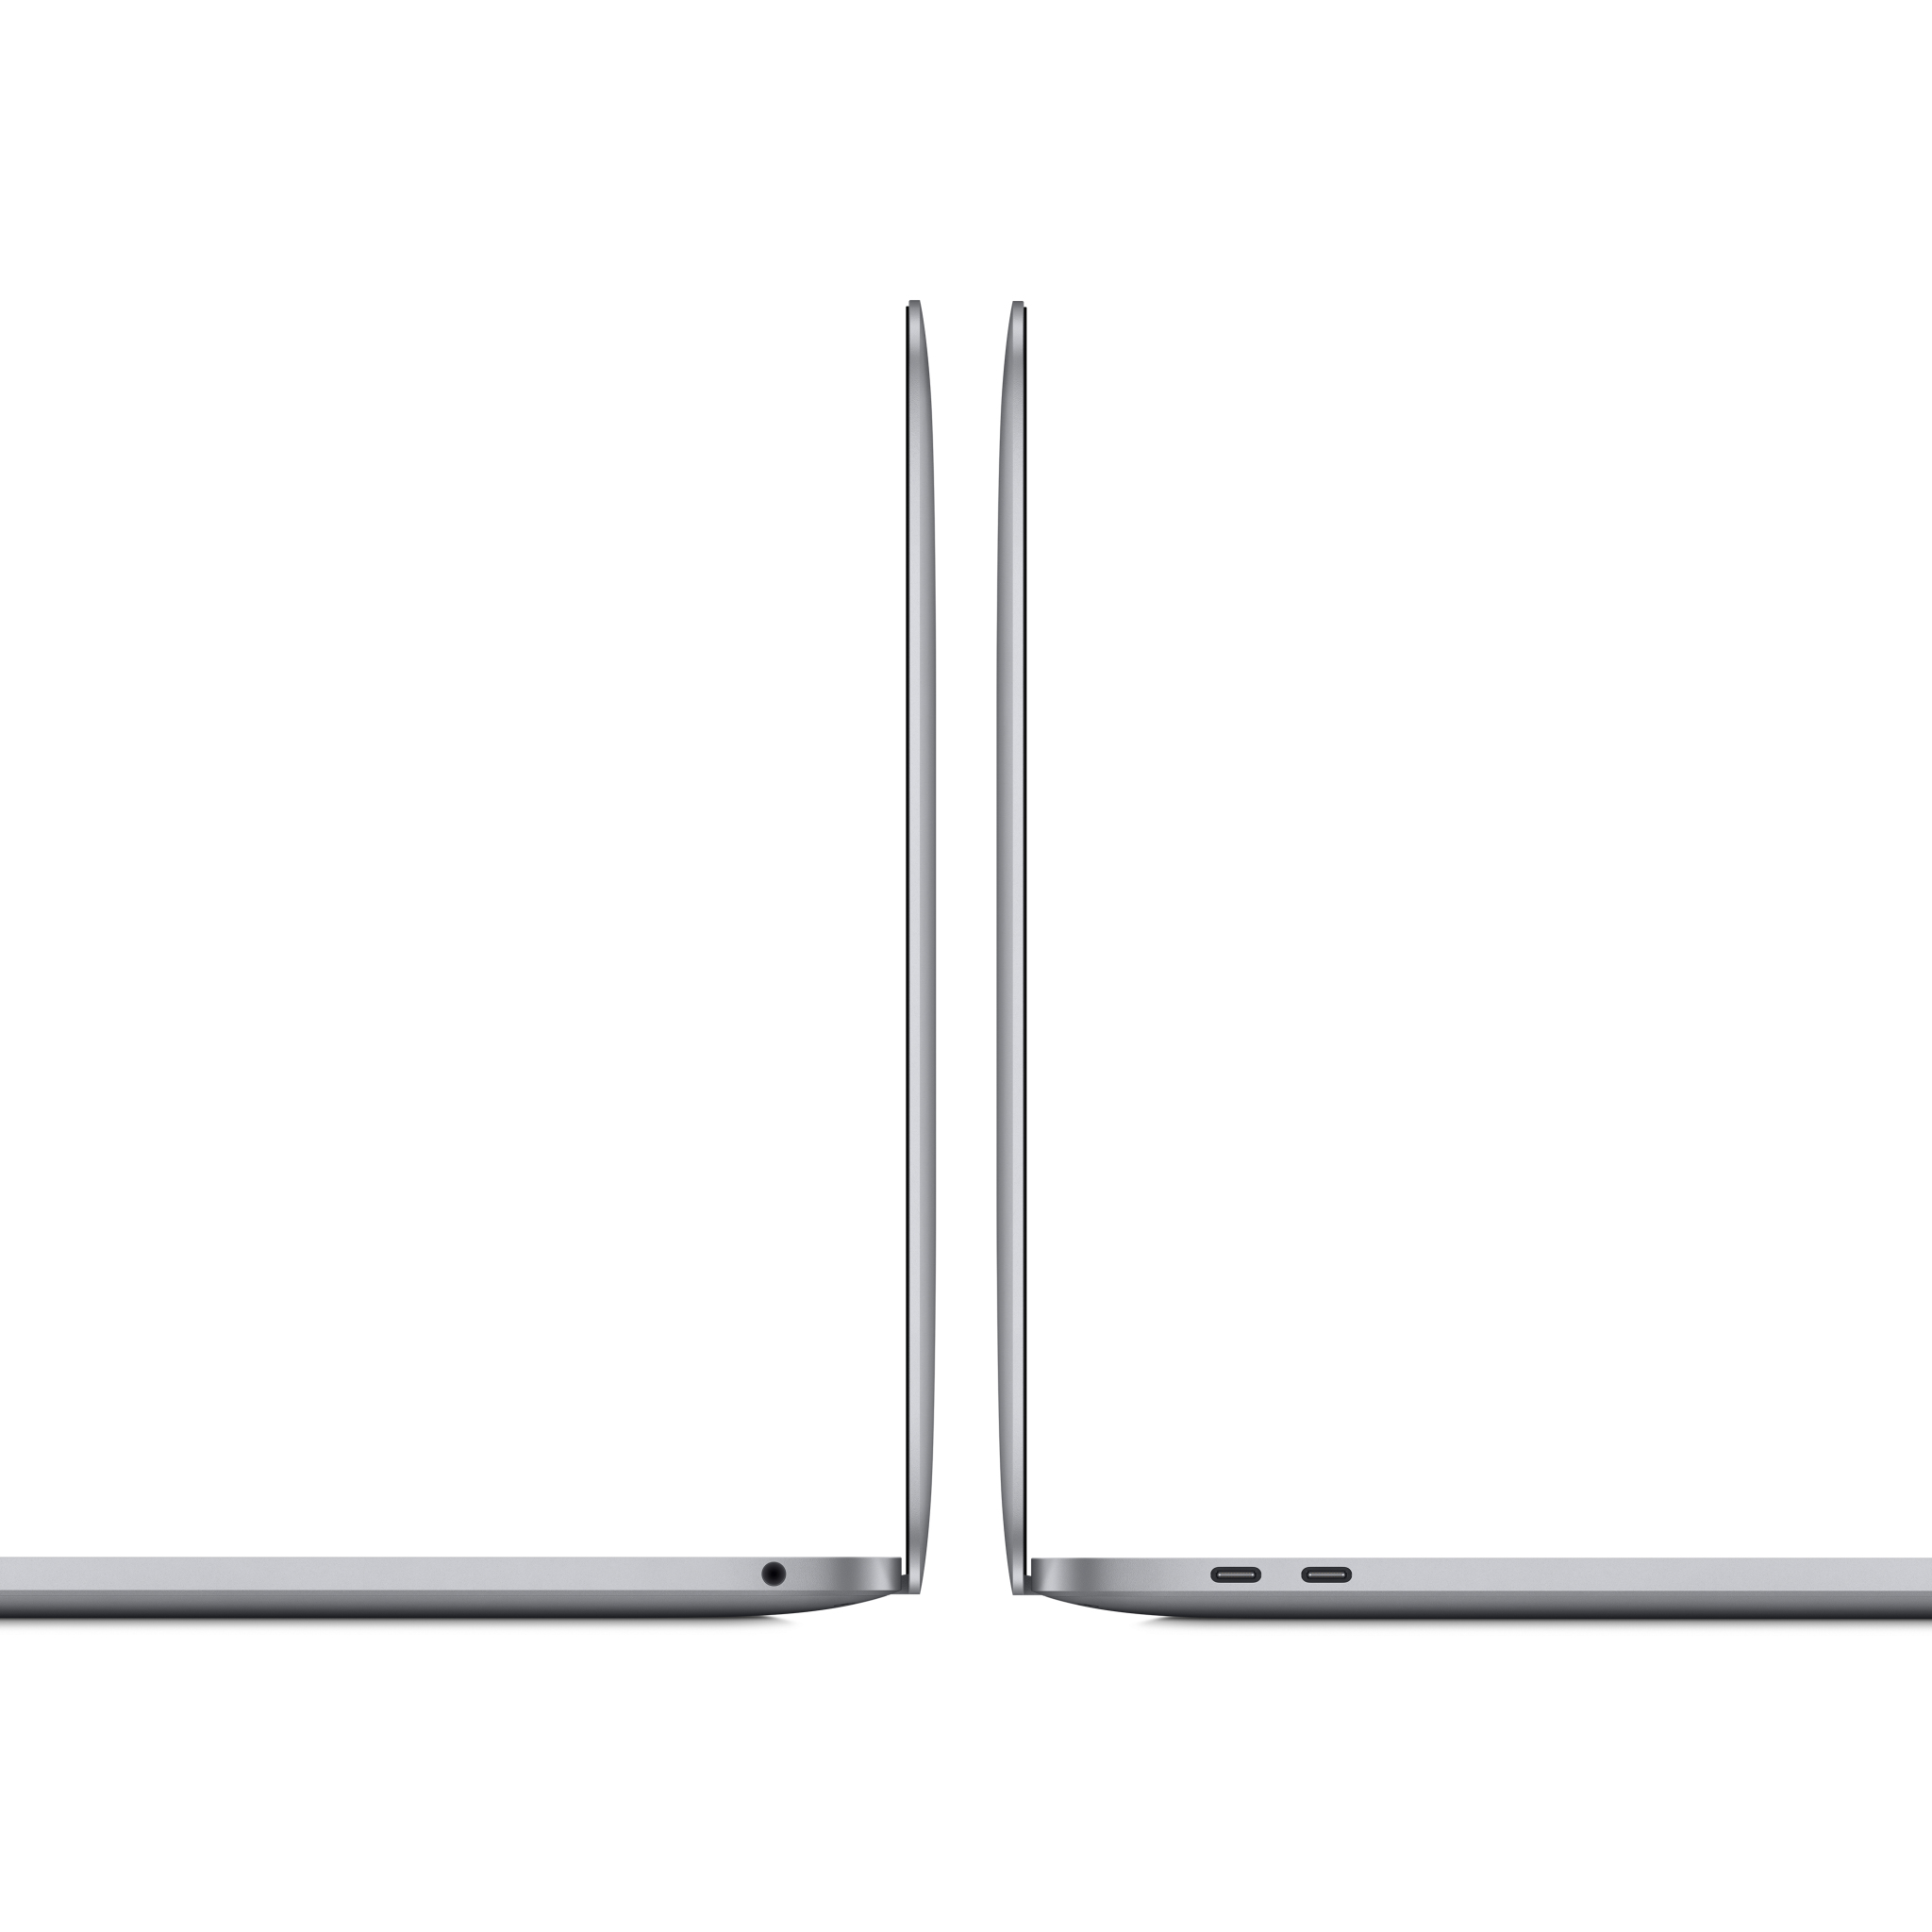 APPLE MacBookPro 13インチ Touch Bar搭載モデル MXK32J/A(MBP 13.3 SG/1.4GHZ QC/8GB/256GB)